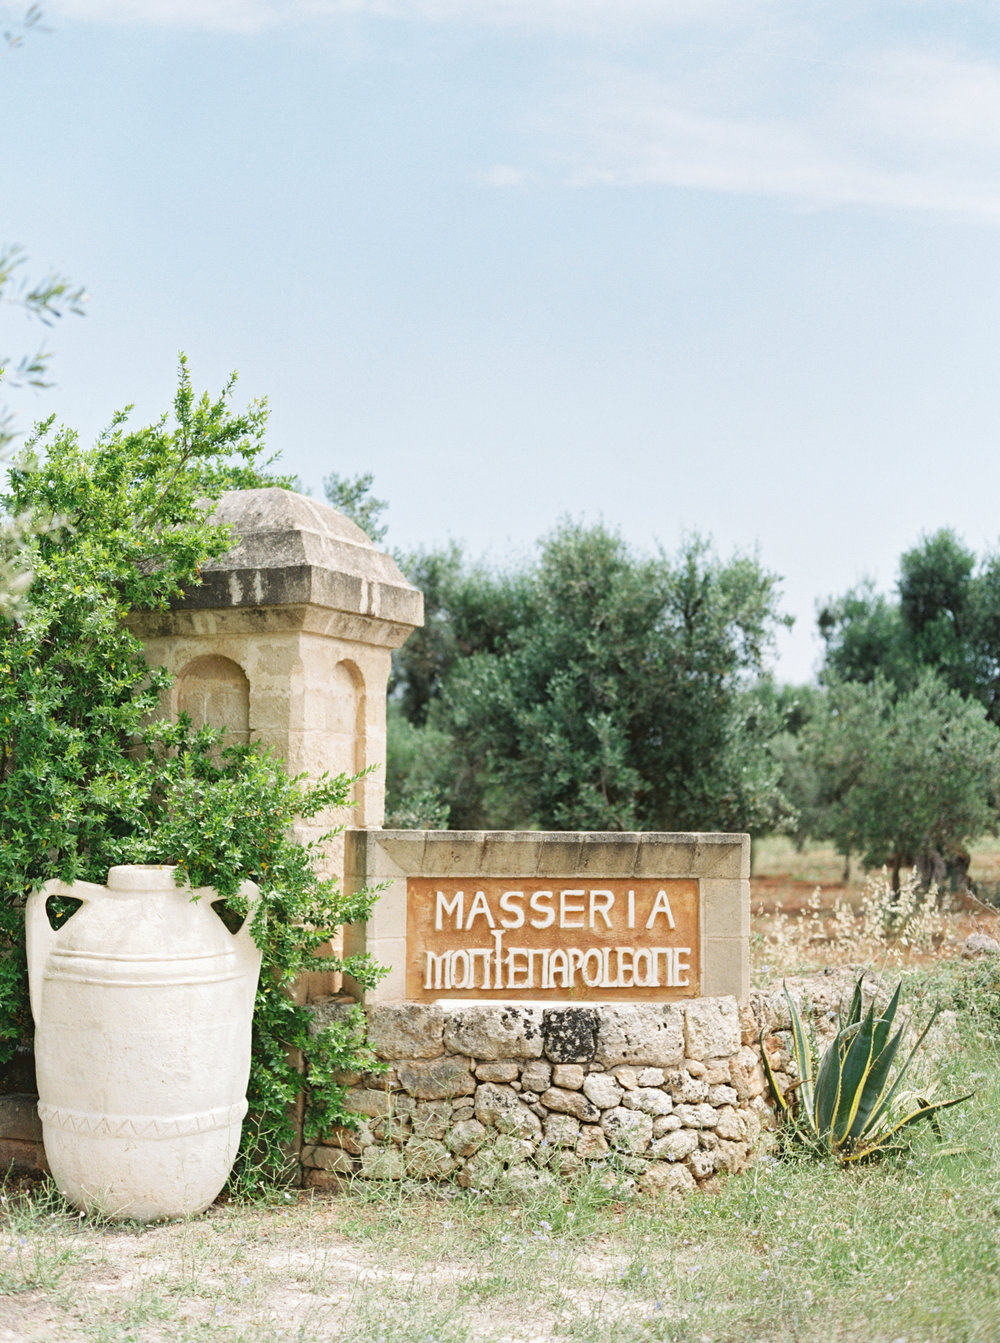 Masseria Montenapoleone destination wedding in Puglia, Italy by Meggie Francisco Events.